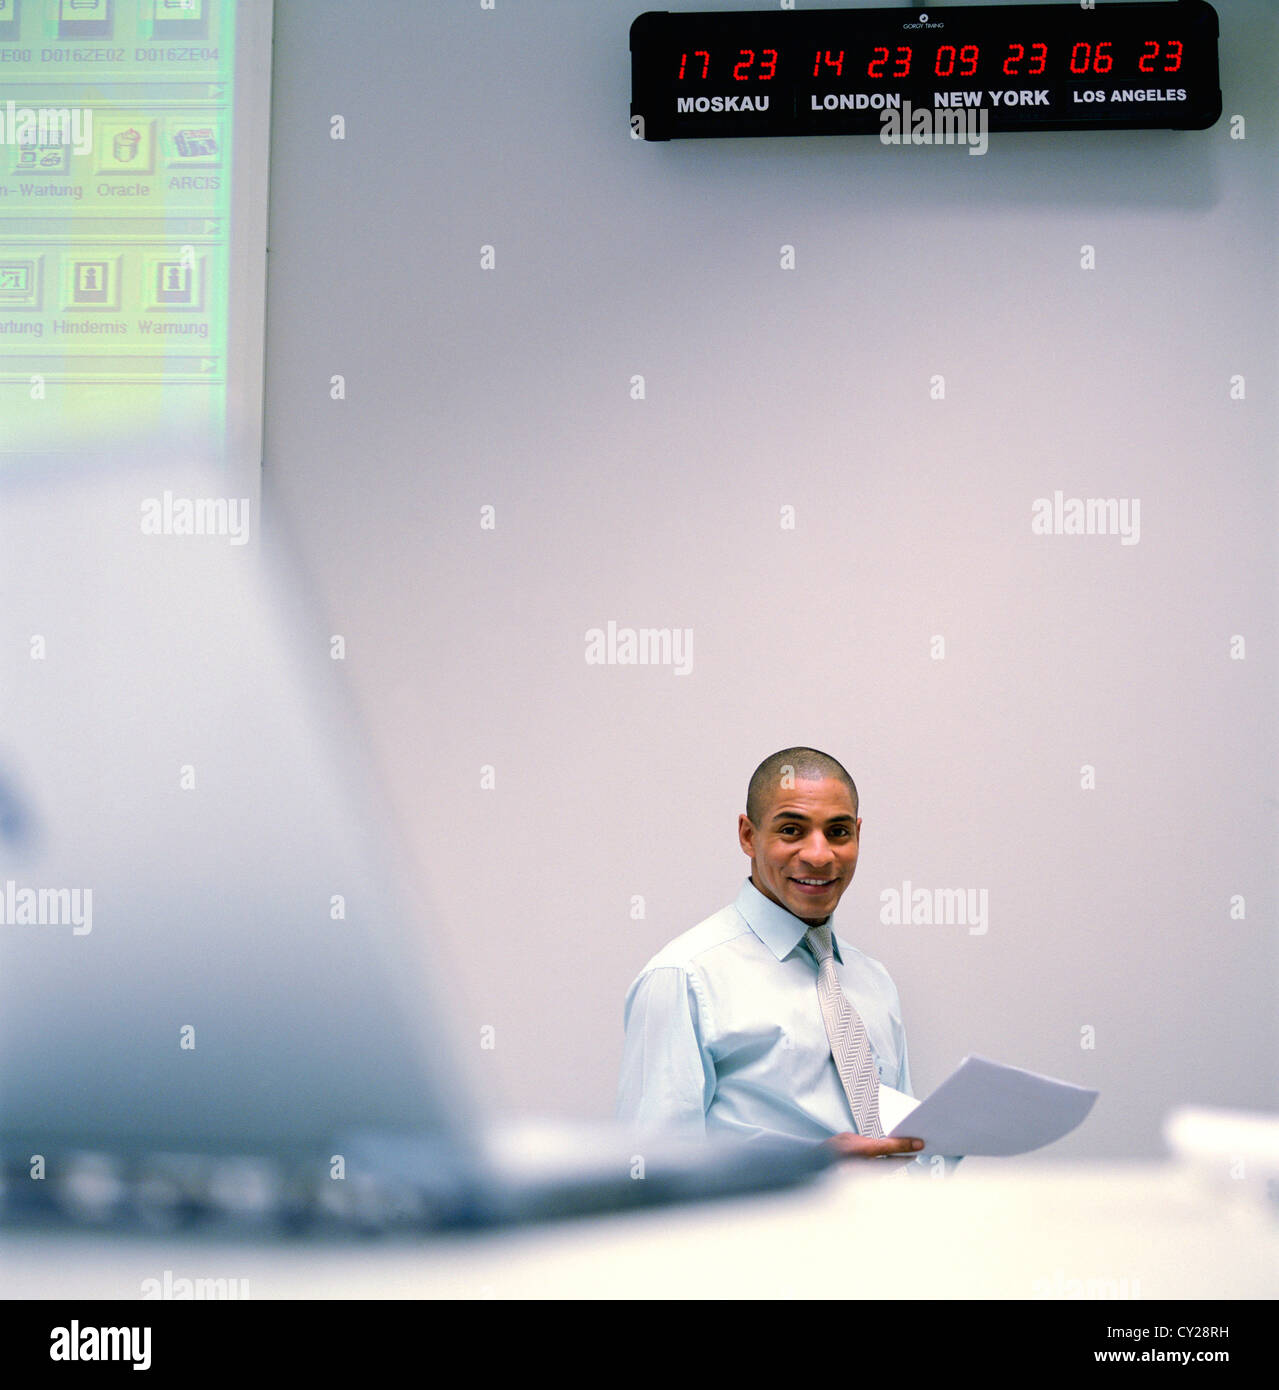 business people data center control center man desk world clock License free except ads and outdoor billboards Stock Photo